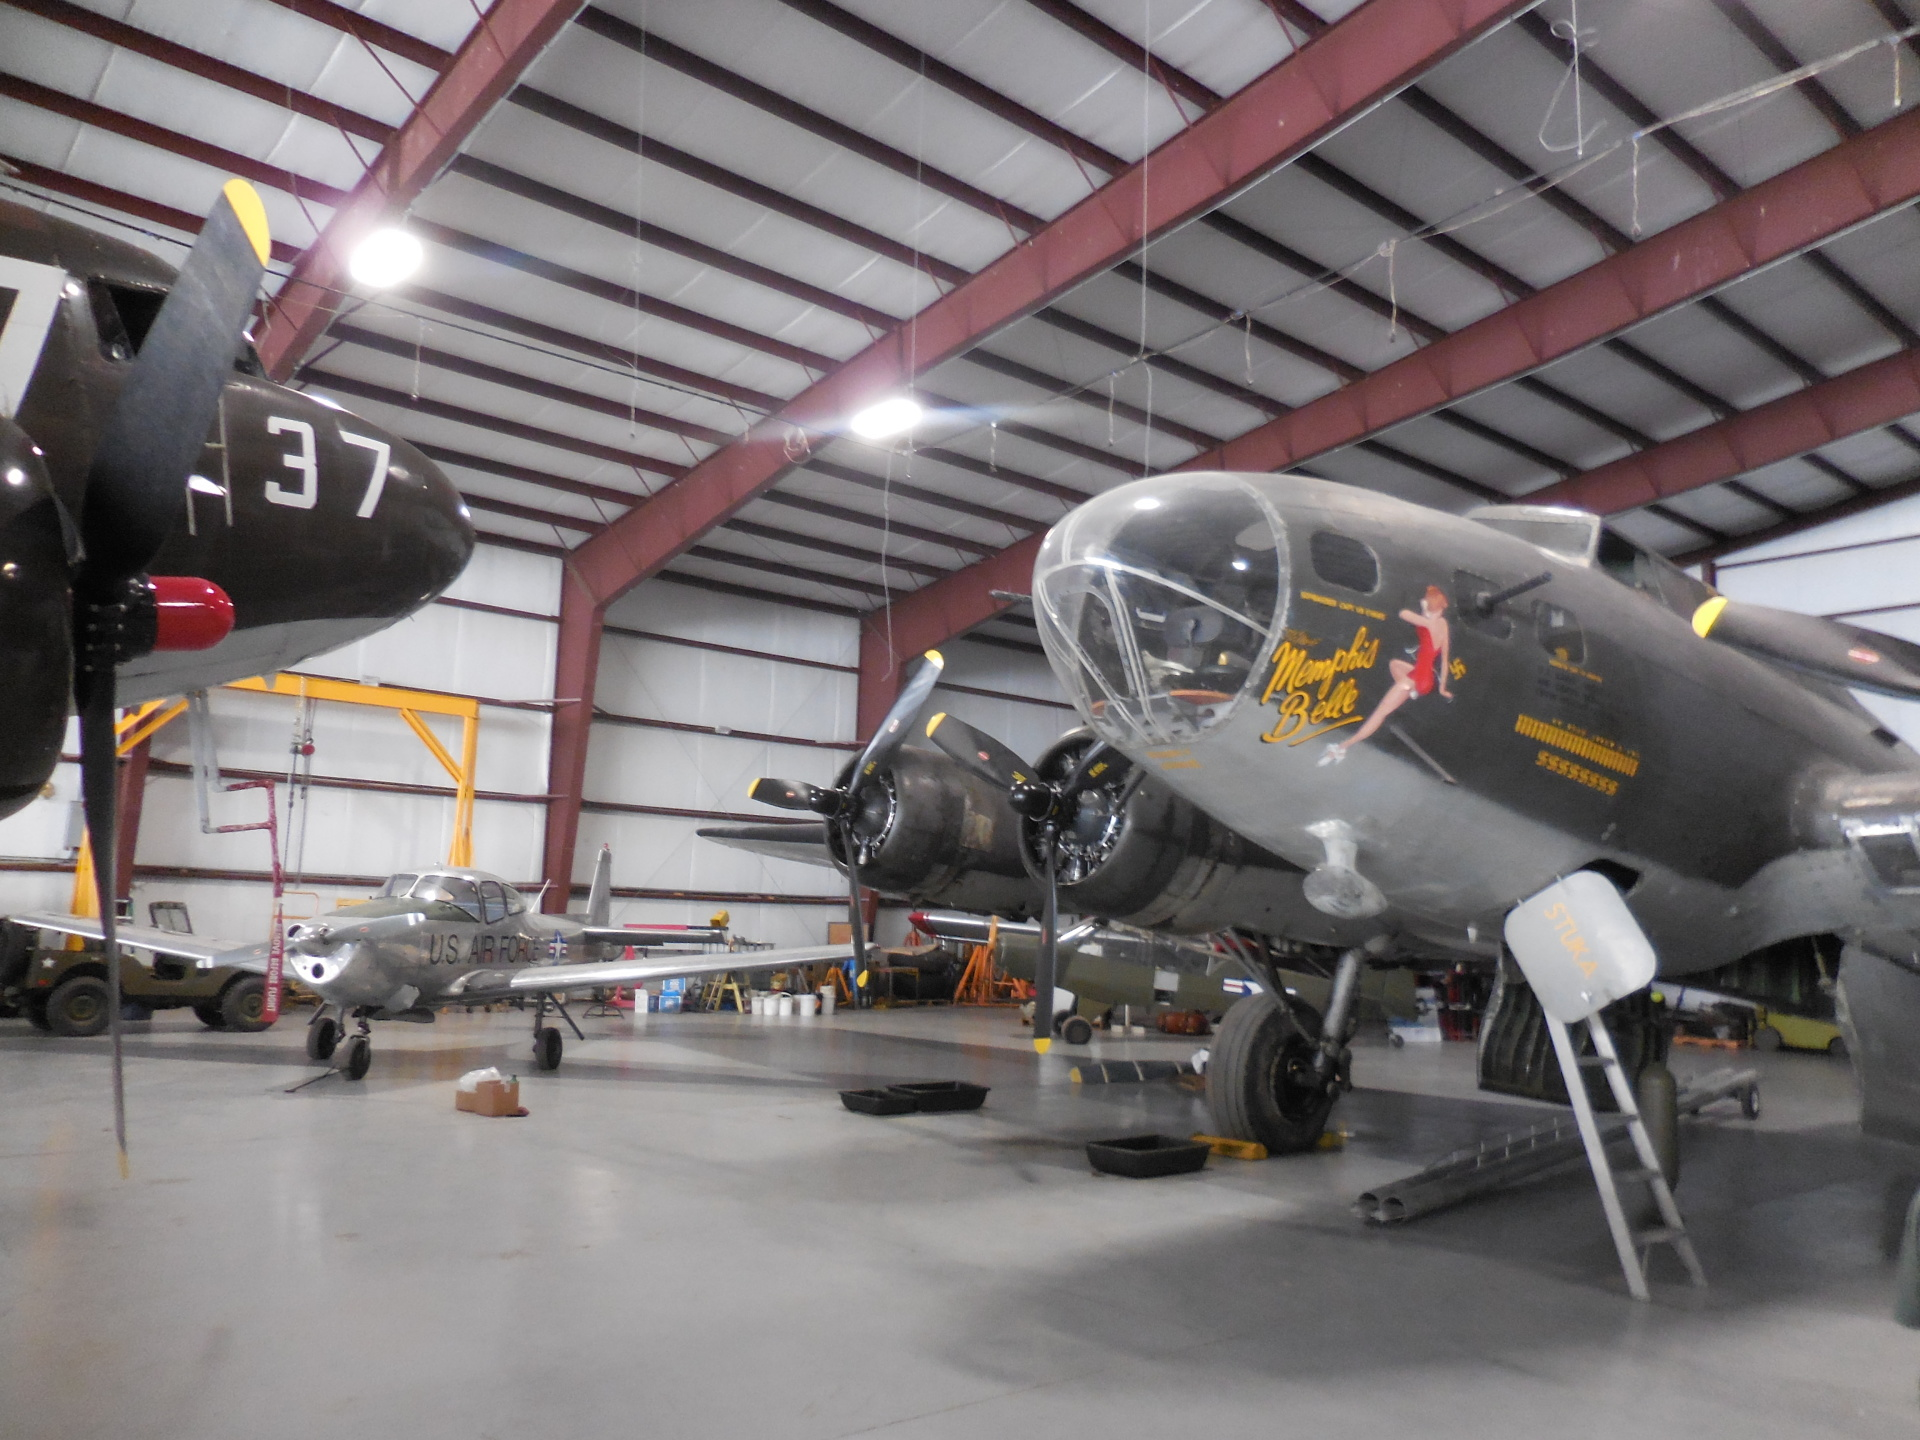 Exploring the National Warplane Museum in Geneseo New York